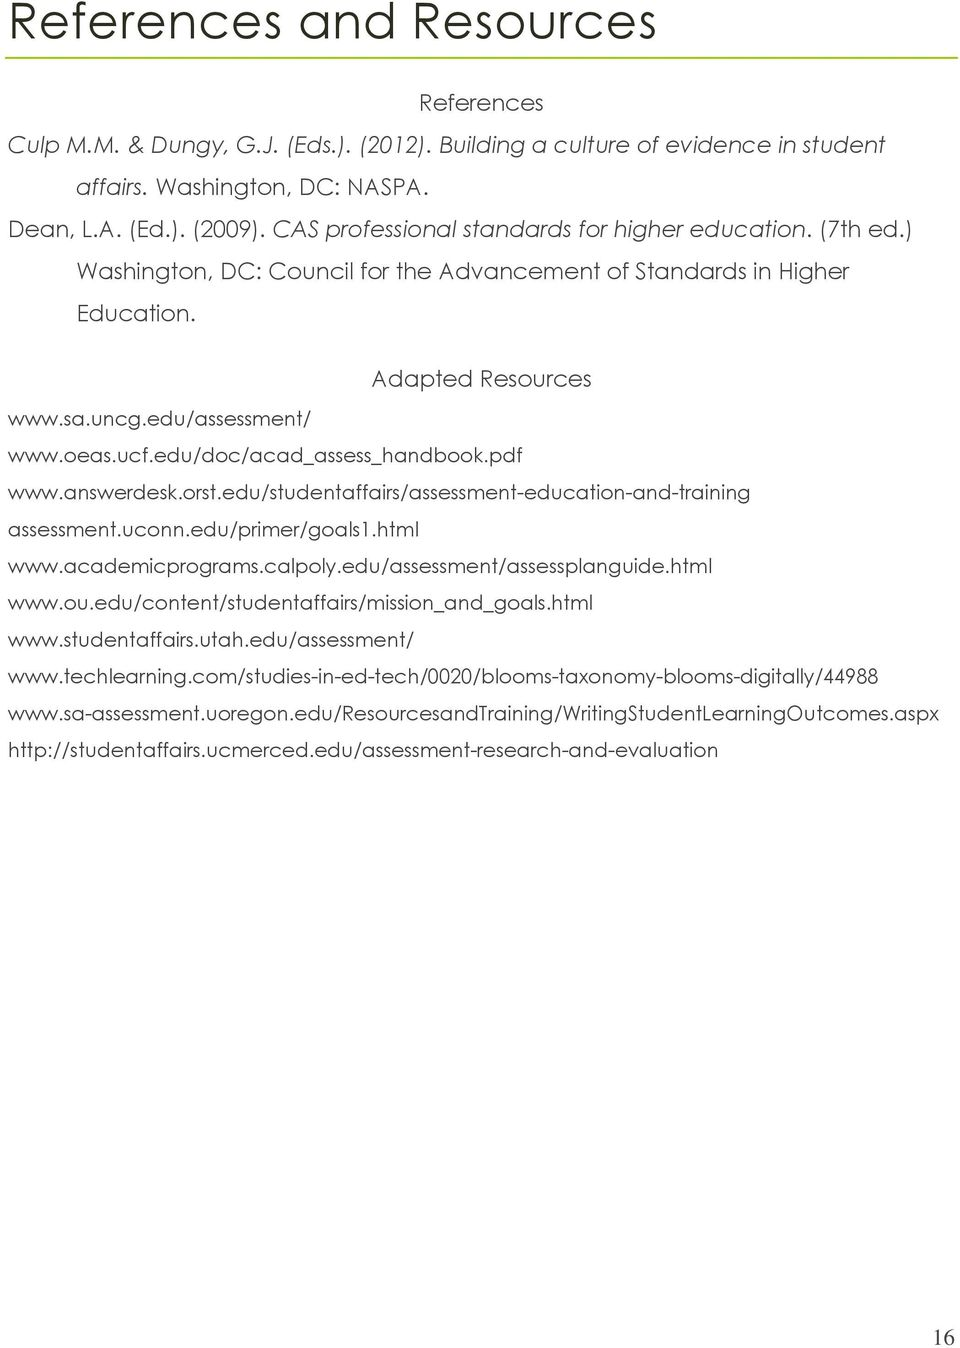 edu/doc/acad_assess_handbook.pdf www.answerdesk.orst.edu/studentaffairs/assessment-education-and-training assessment.uconn.edu/primer/goals1.html www.academicprograms.calpoly.